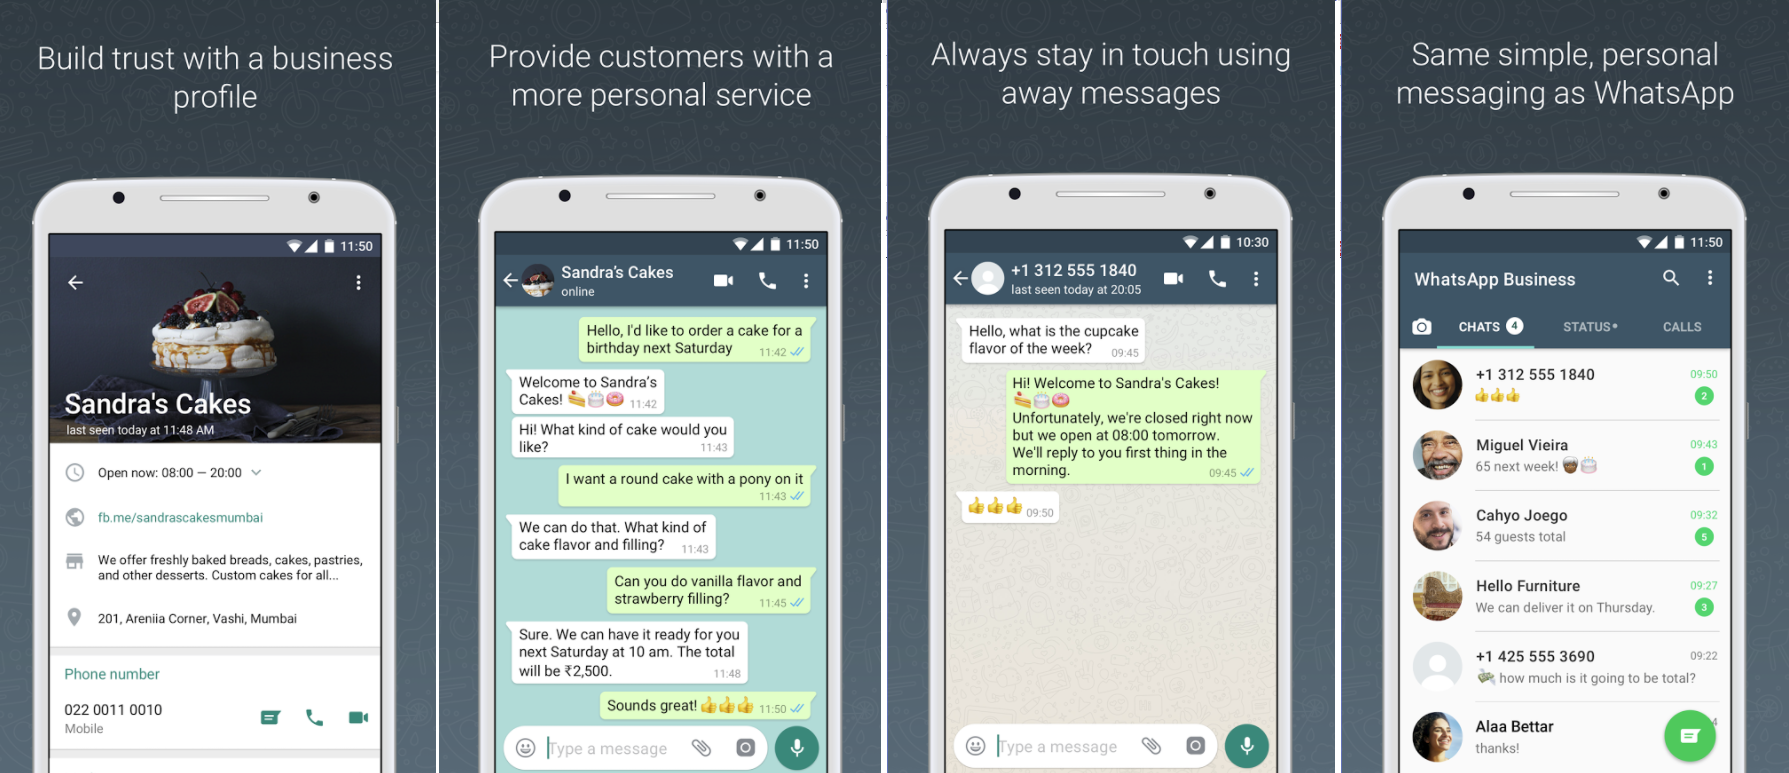 WhatsApp Business screenshots